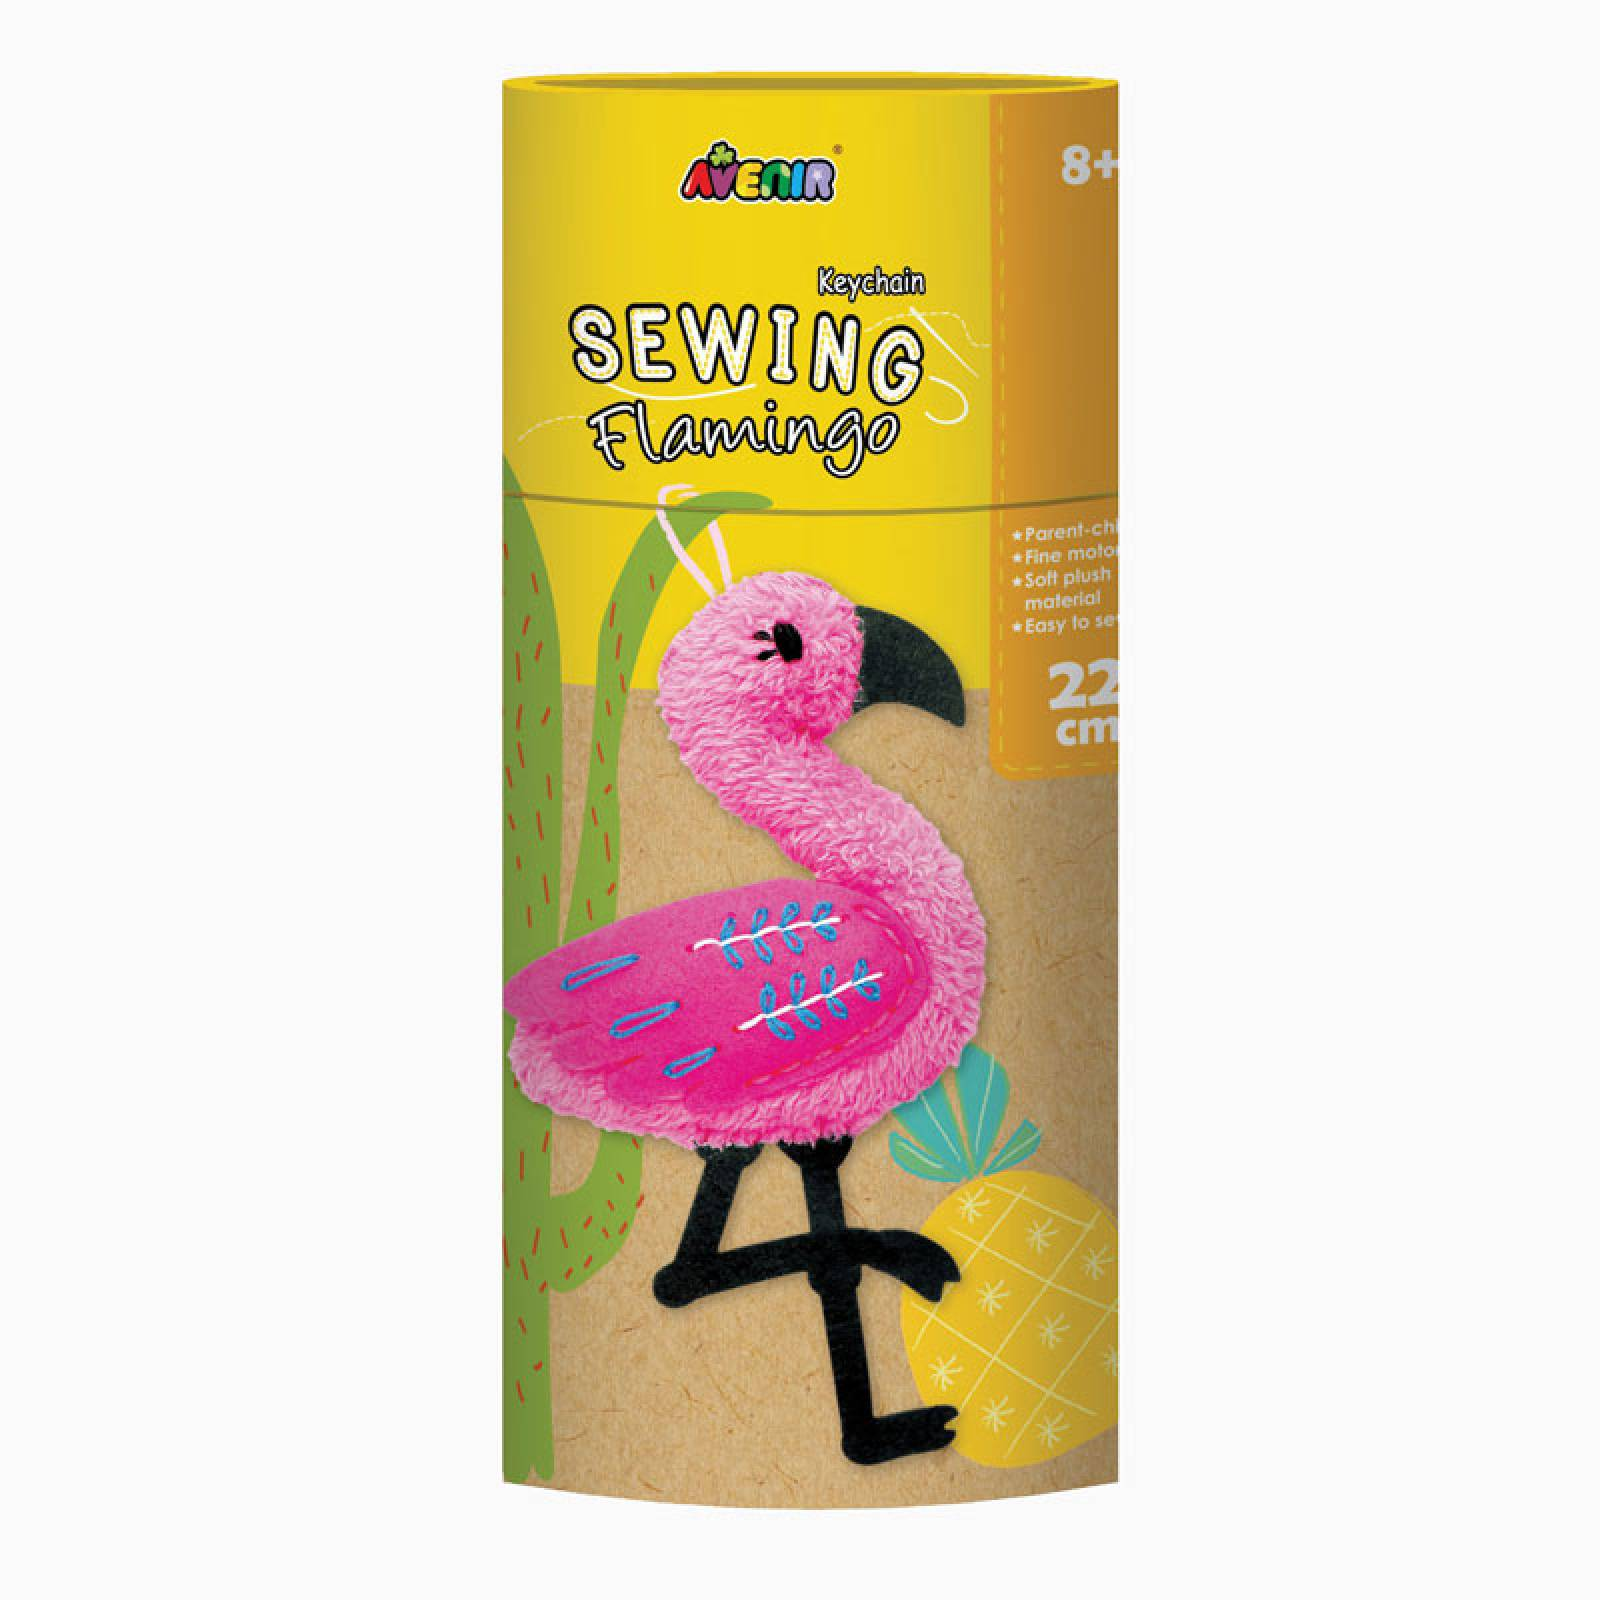 Keychain Sewing Kit - Flamingo 8+